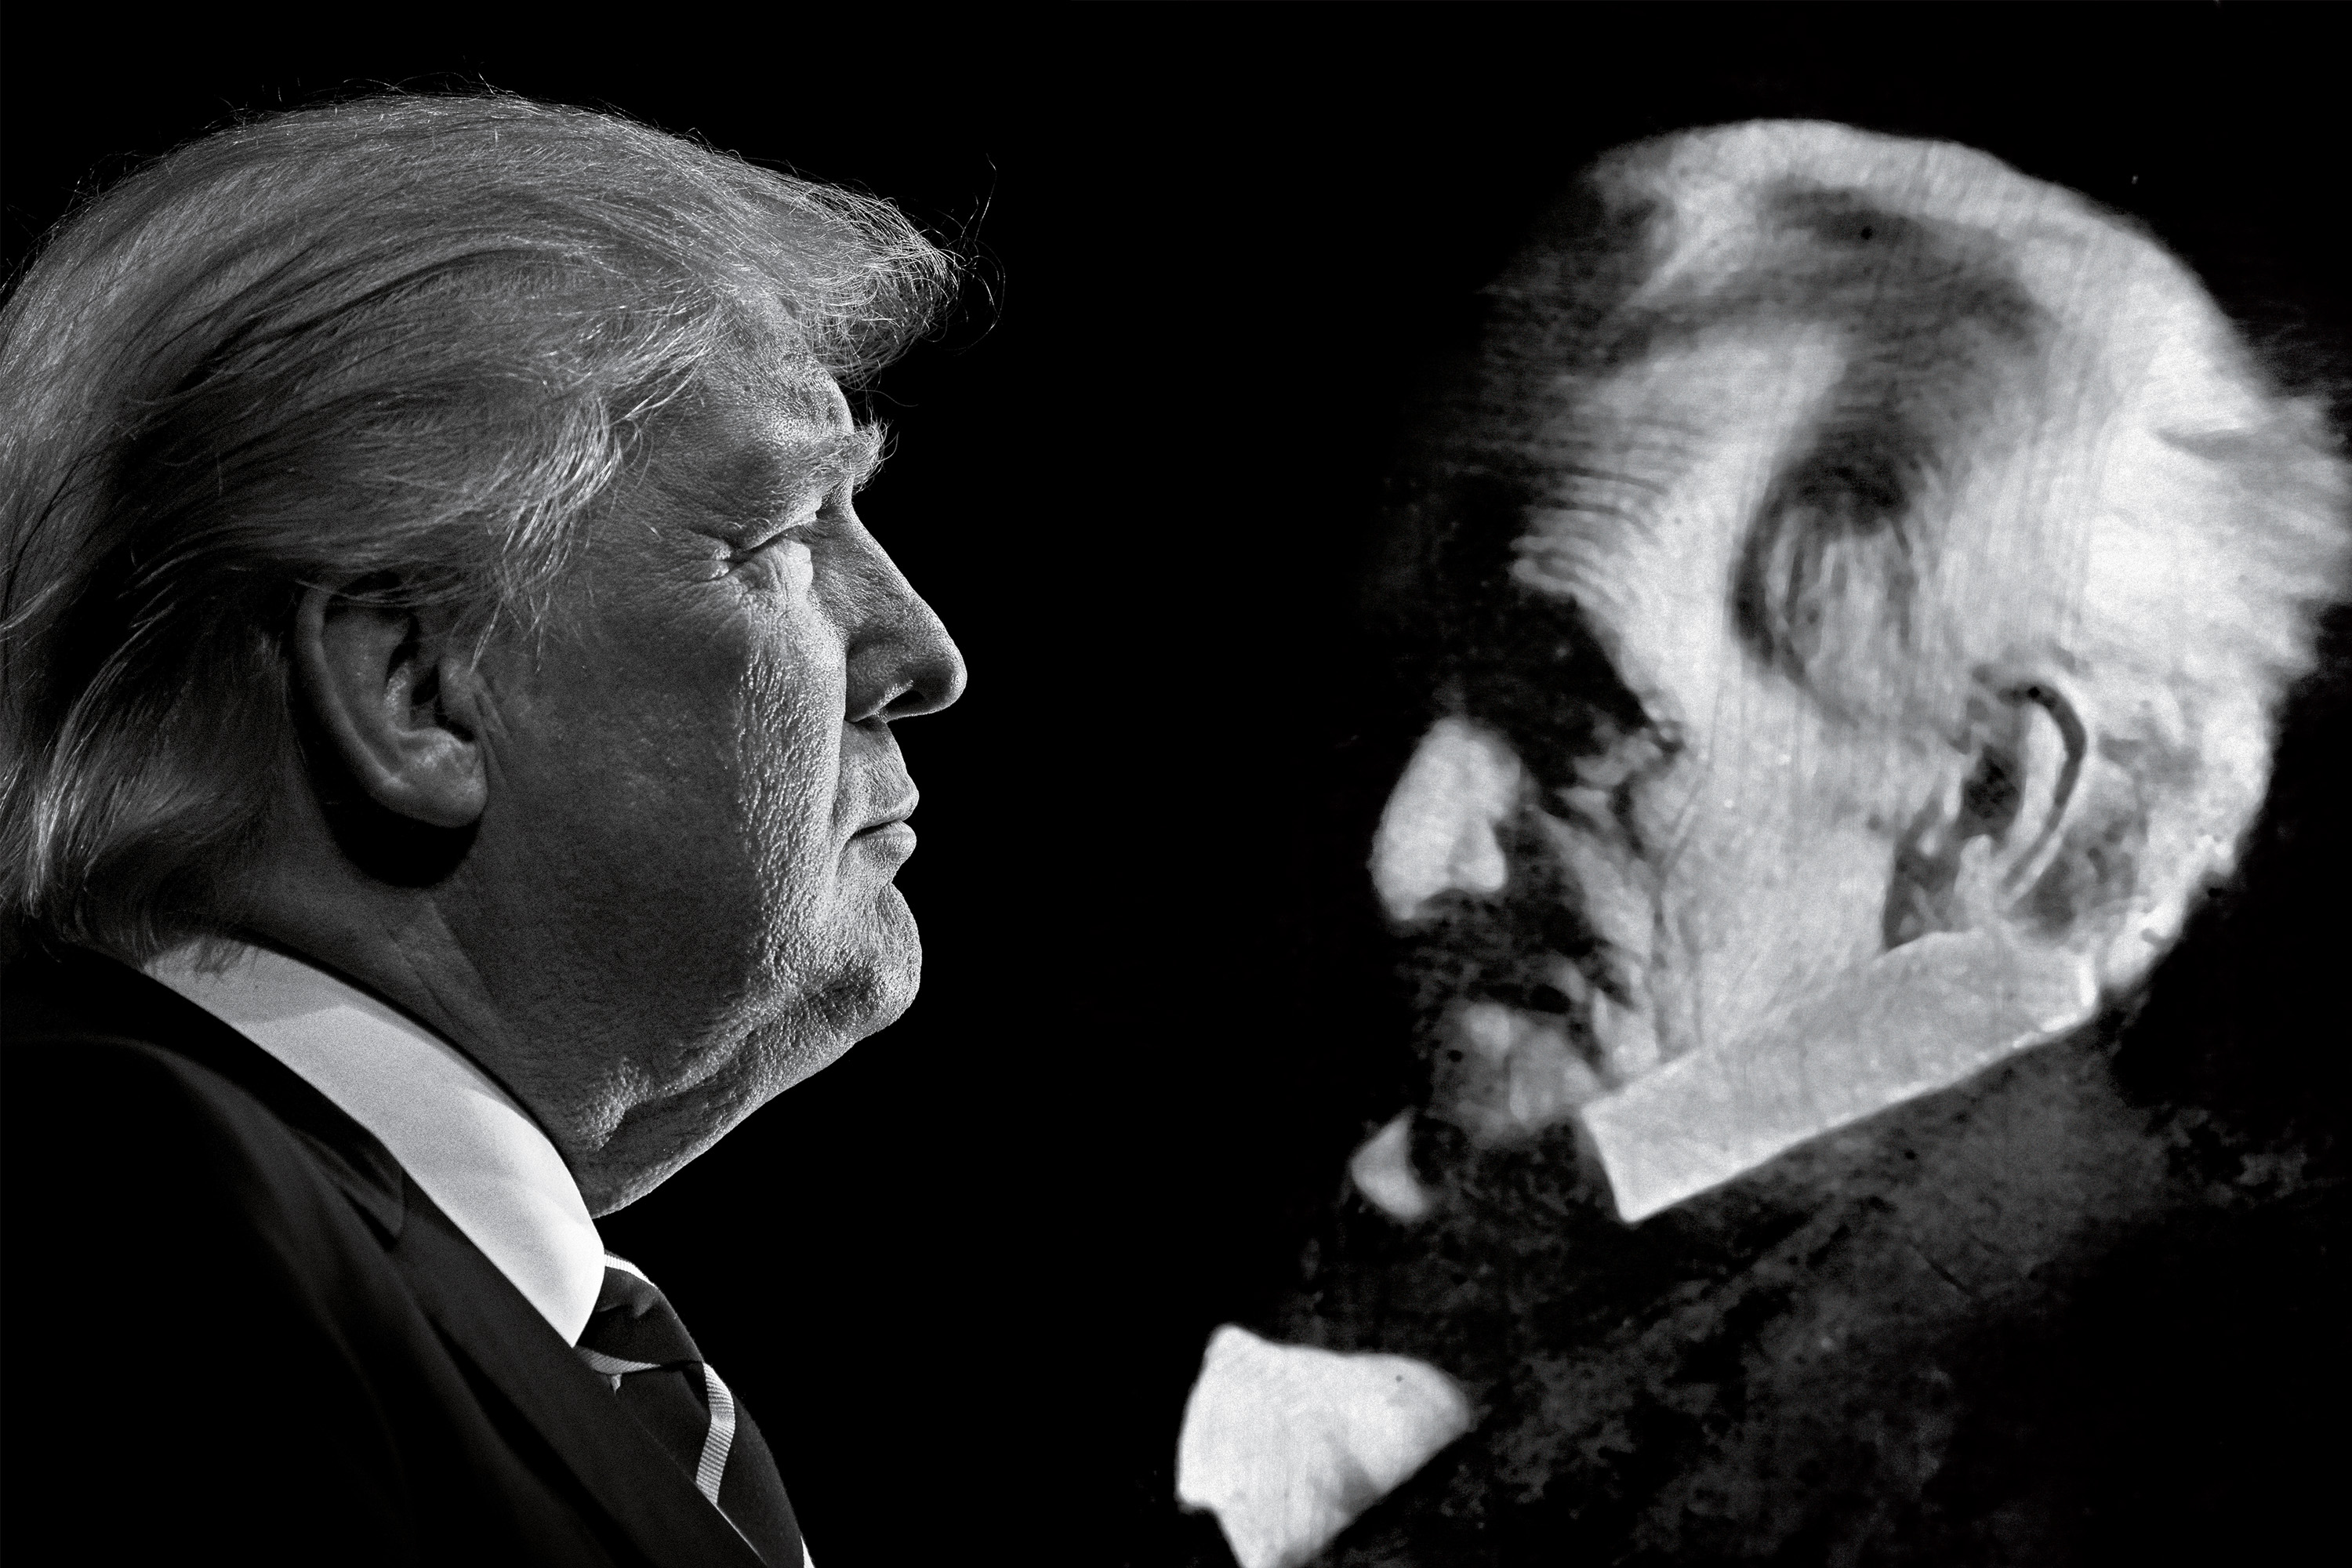 This combination photo shows President-elect Donald Trump and former U.S. President Andrew Jackson.